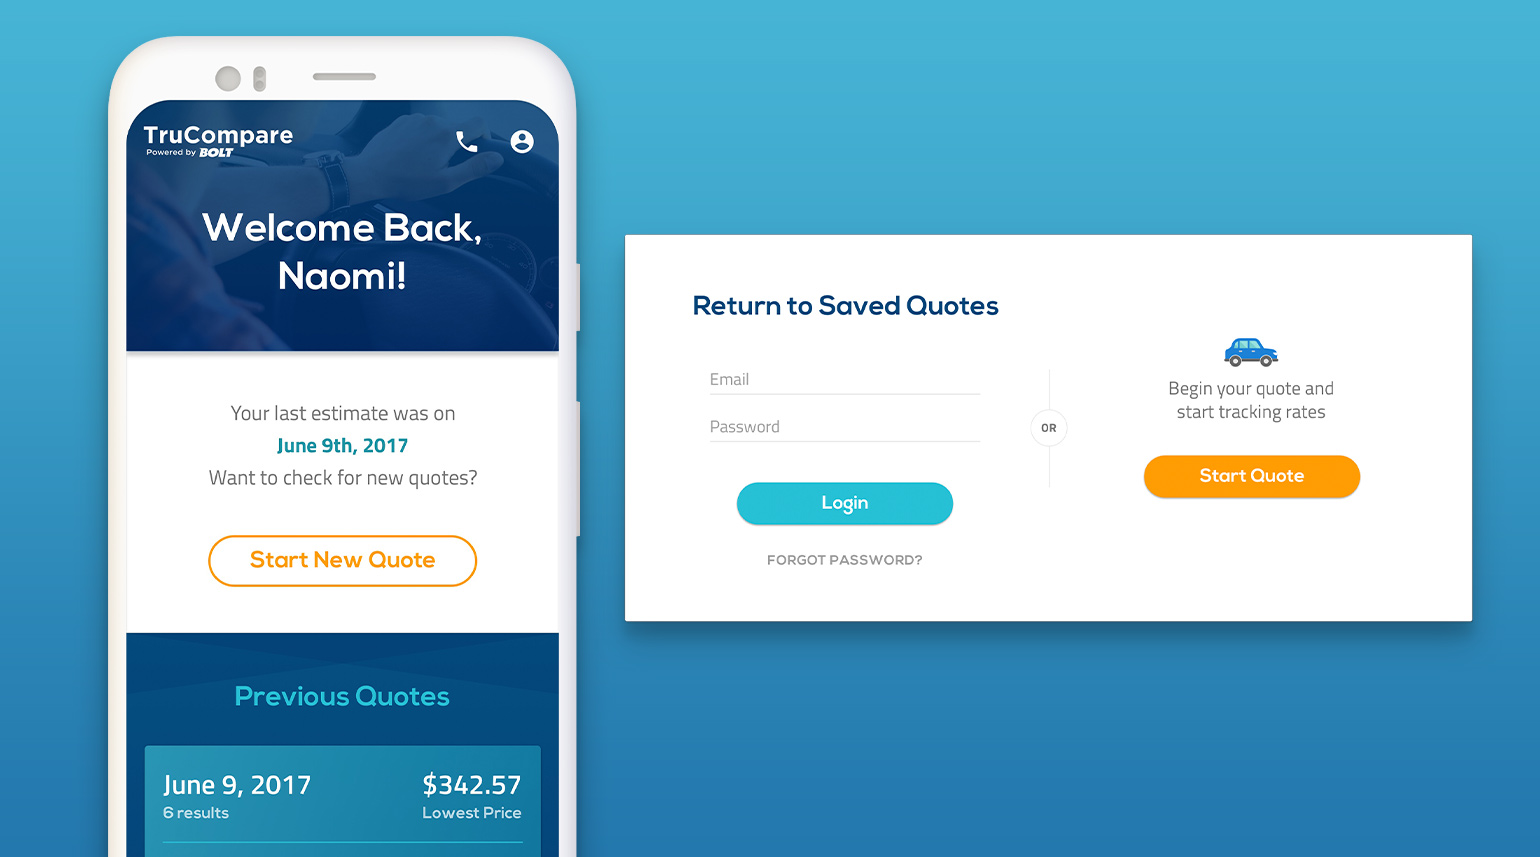 UI components for accessing saved quotes and user information.